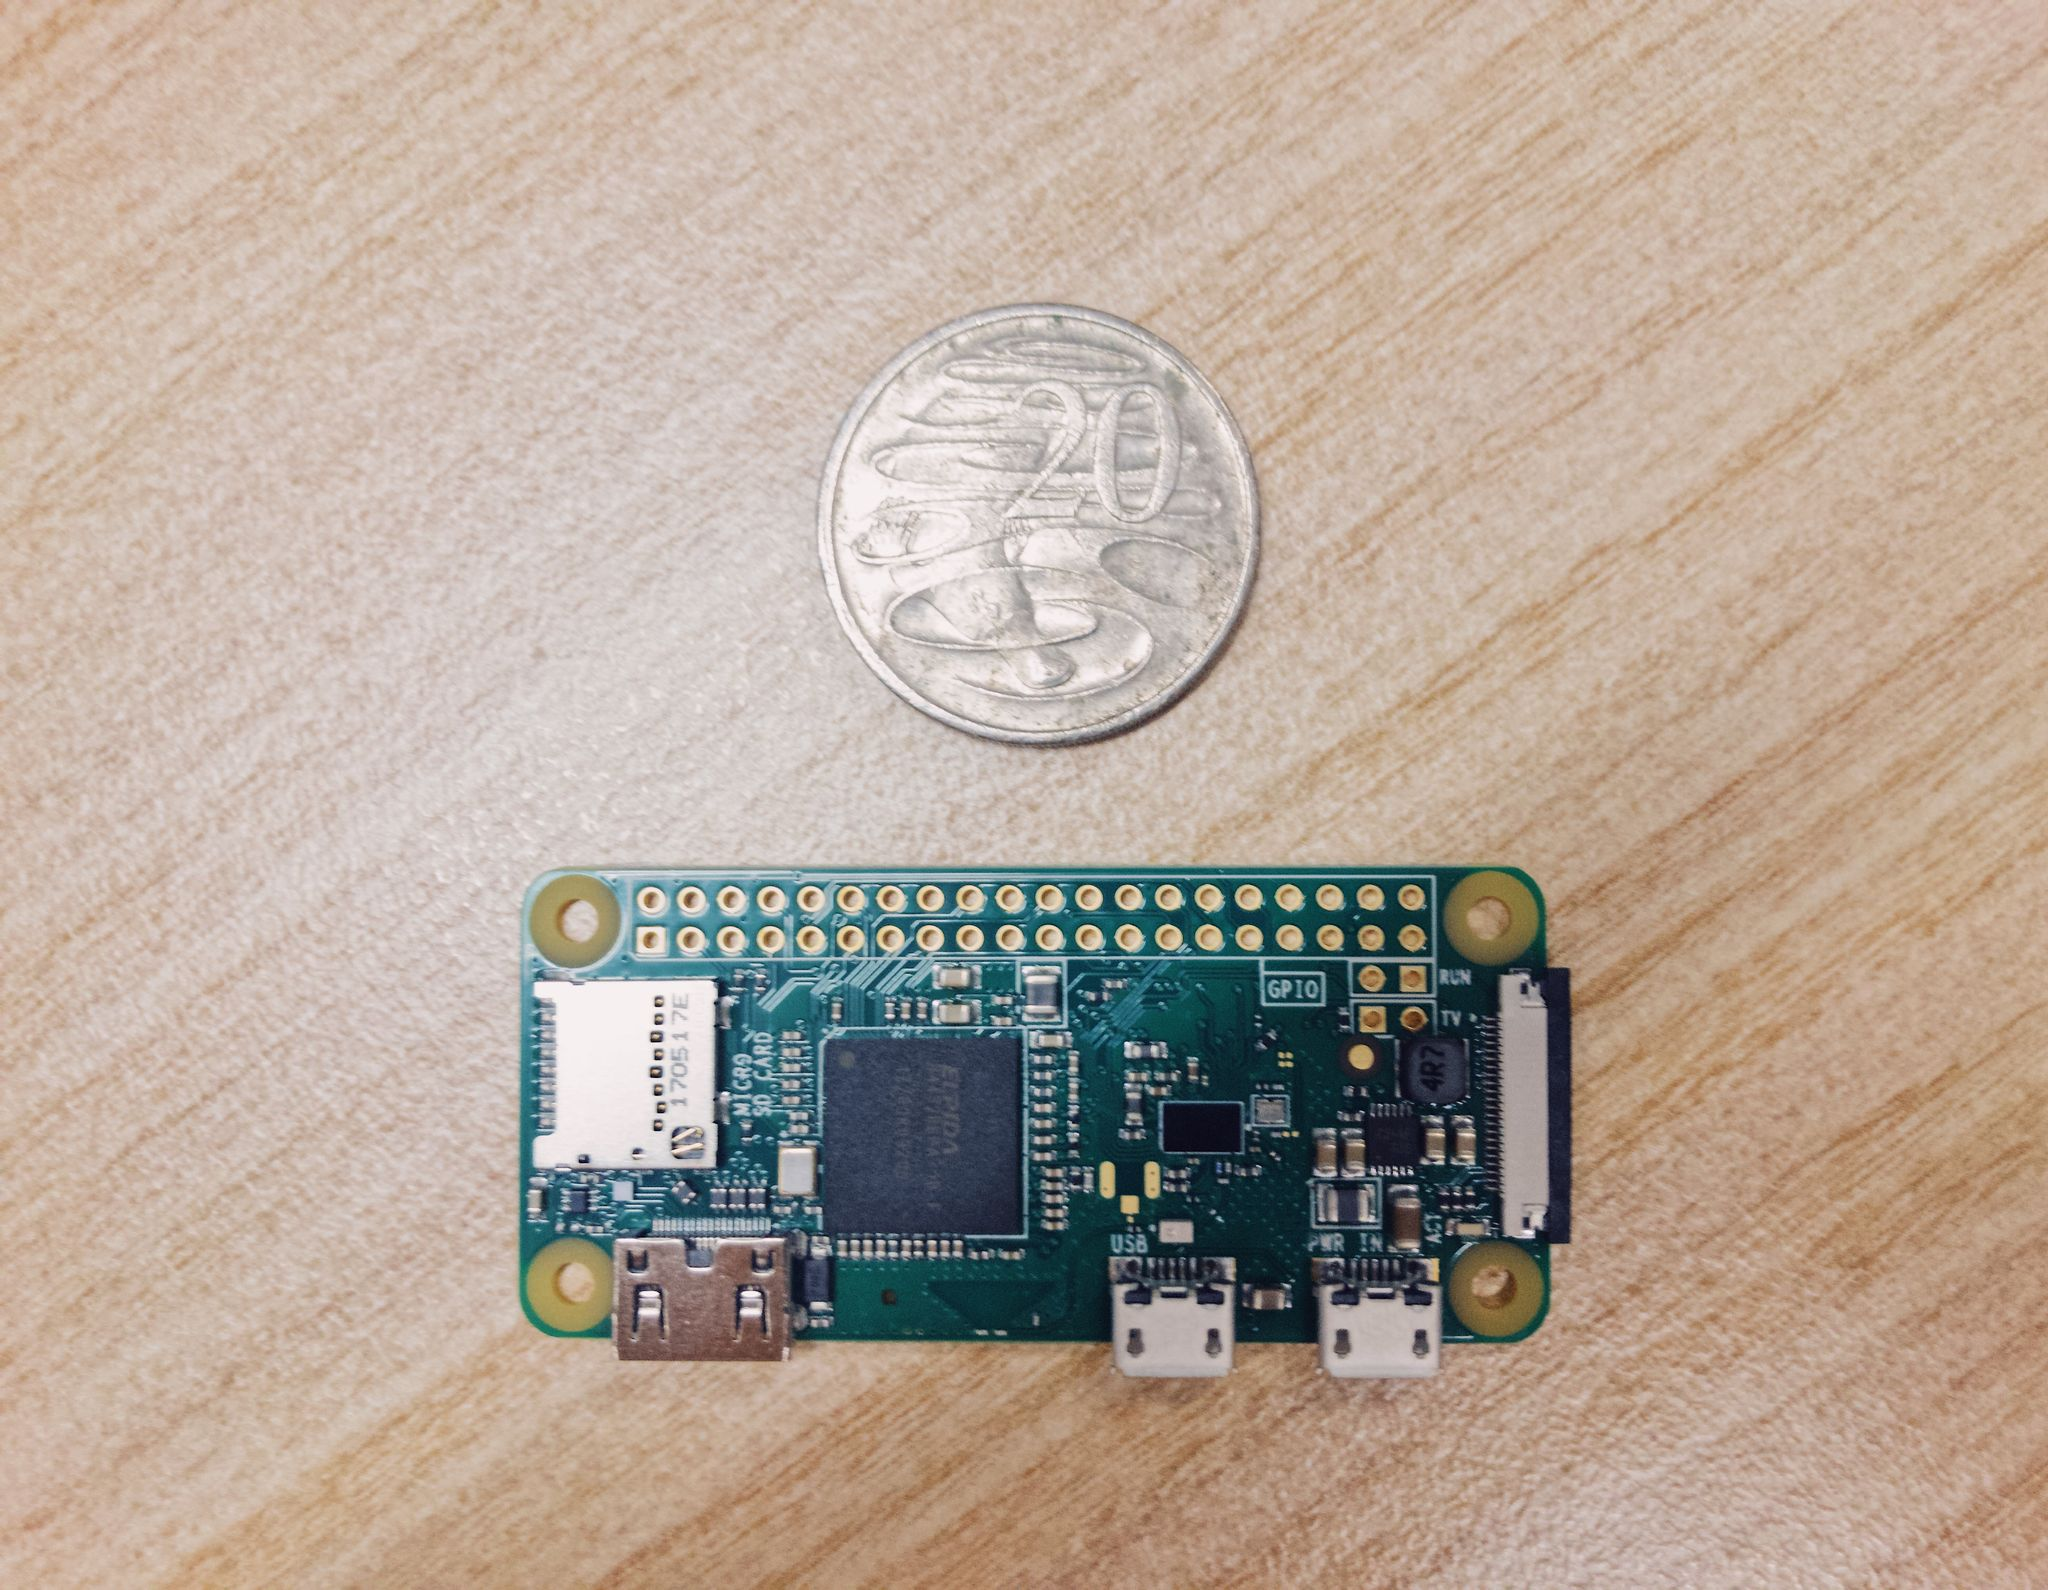 My Raspberry Pi Zero W arrived, and it is ABSURDLY small.